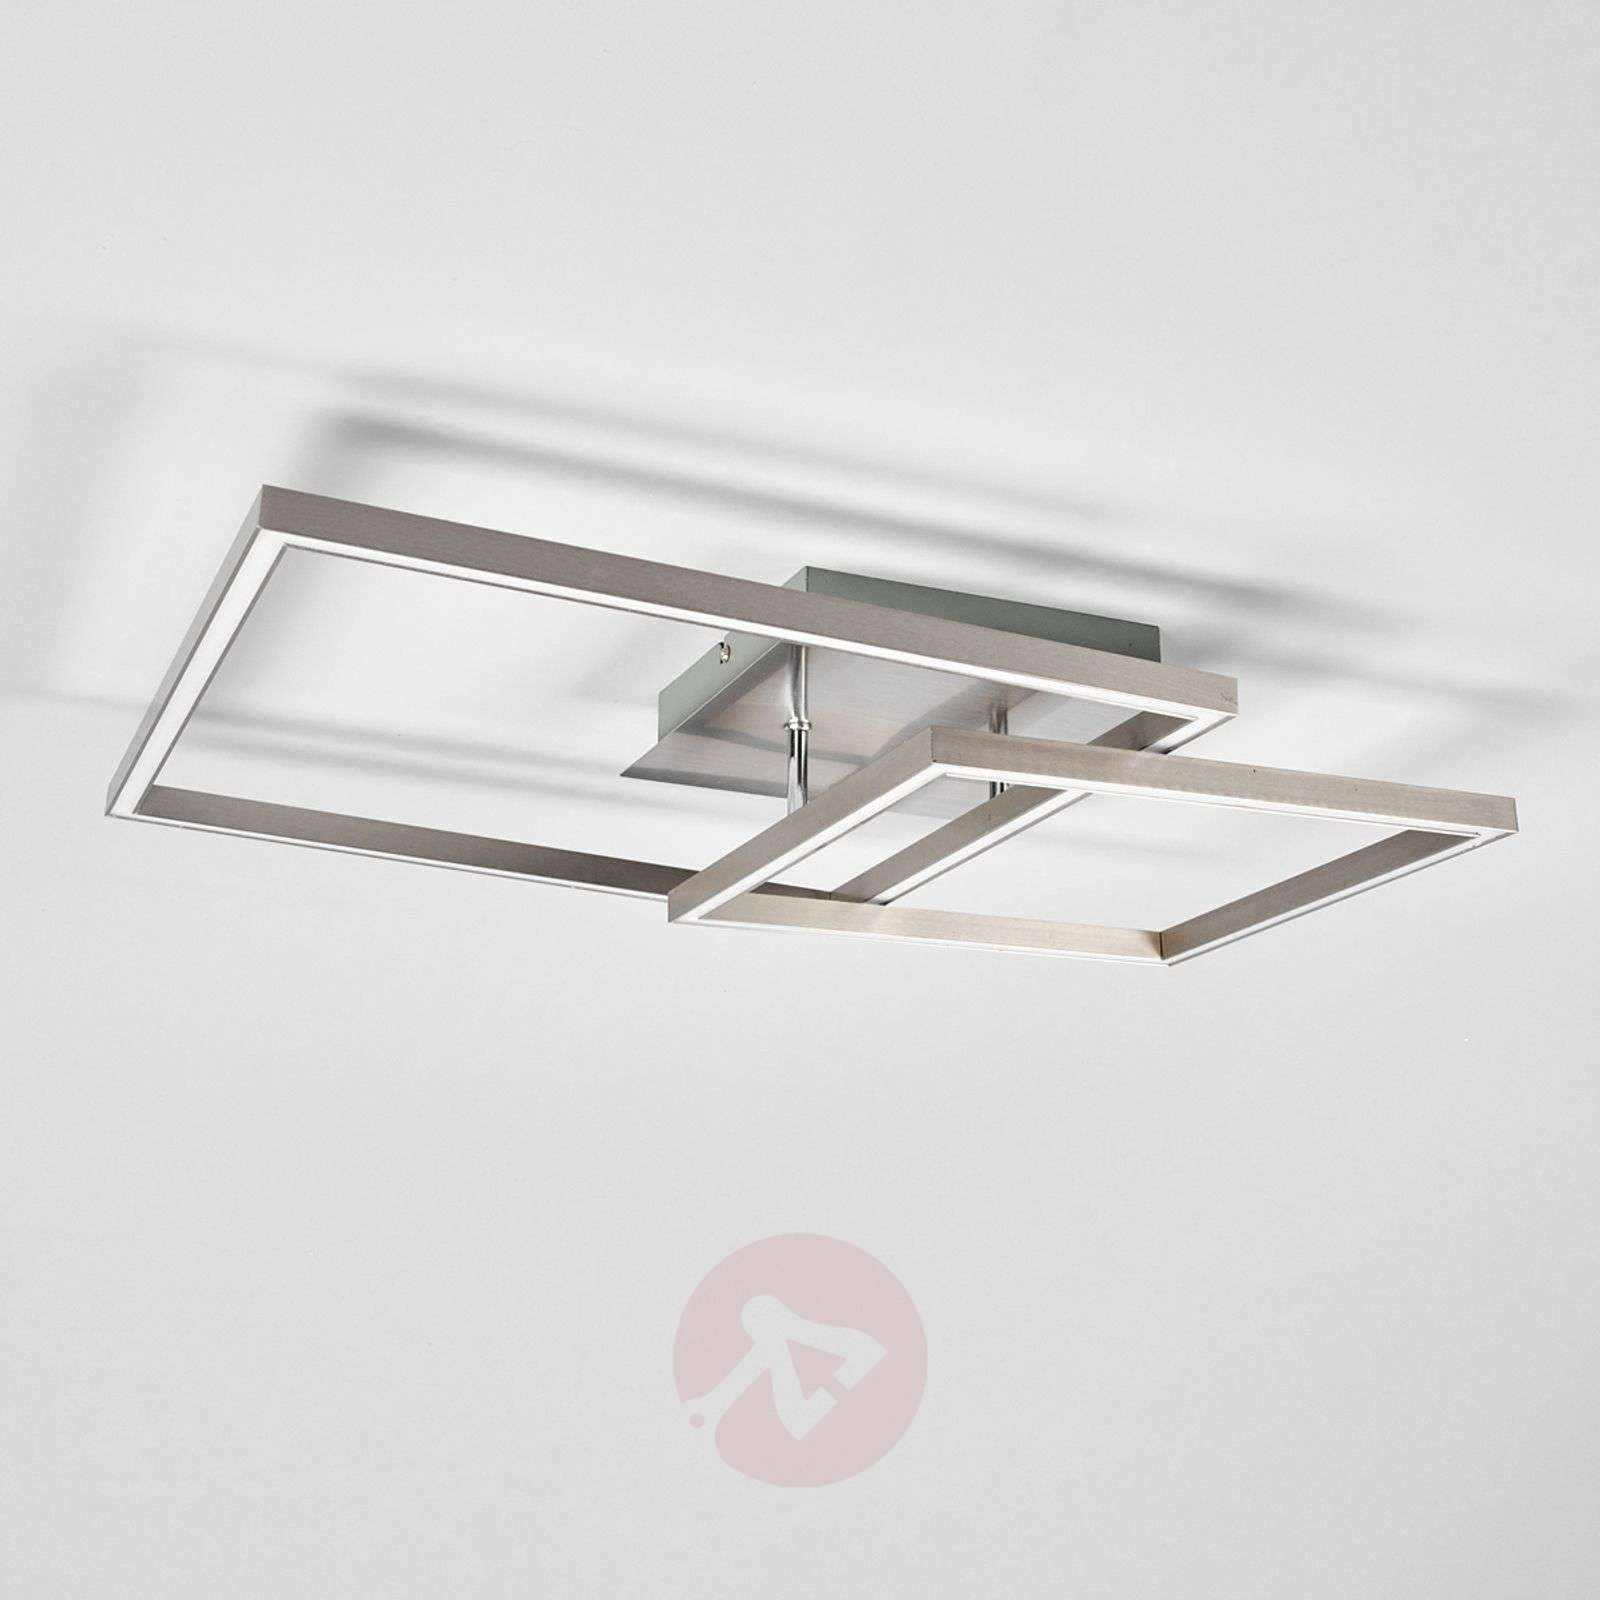 Led co Modern DelianLights Light uk Ceiling I7f6vbmgYy